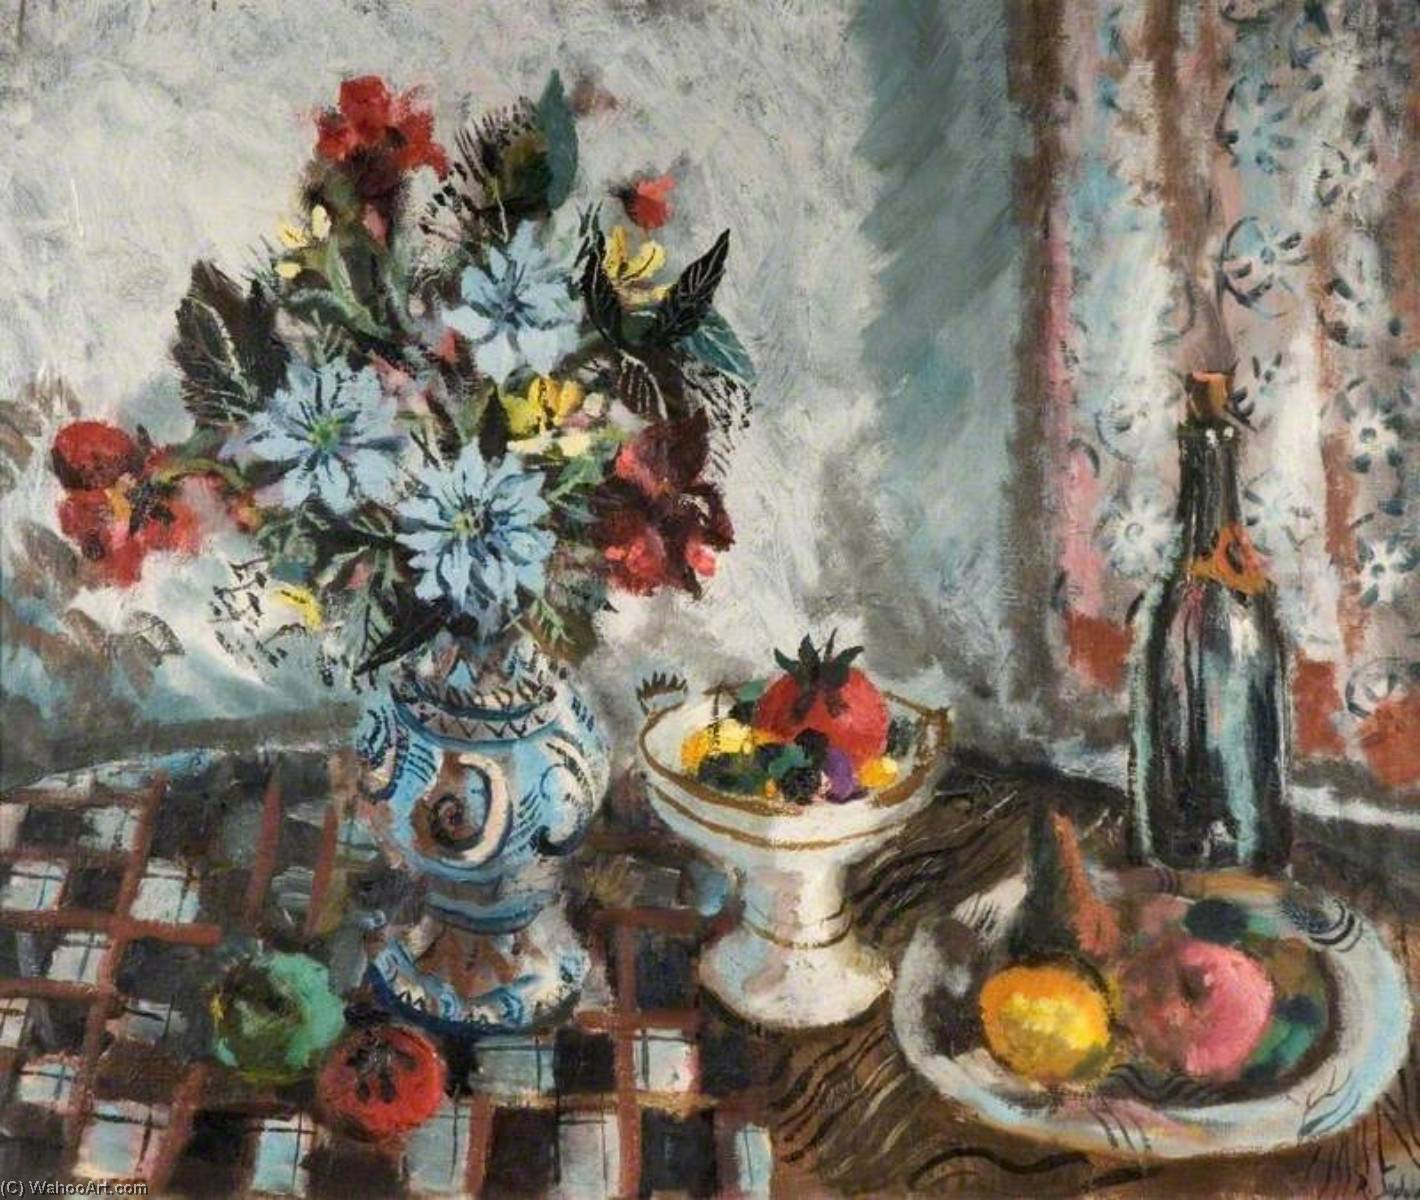 Still Life with Fruit and Flowers by Rowland Suddaby | Oil Painting | WahooArt.com